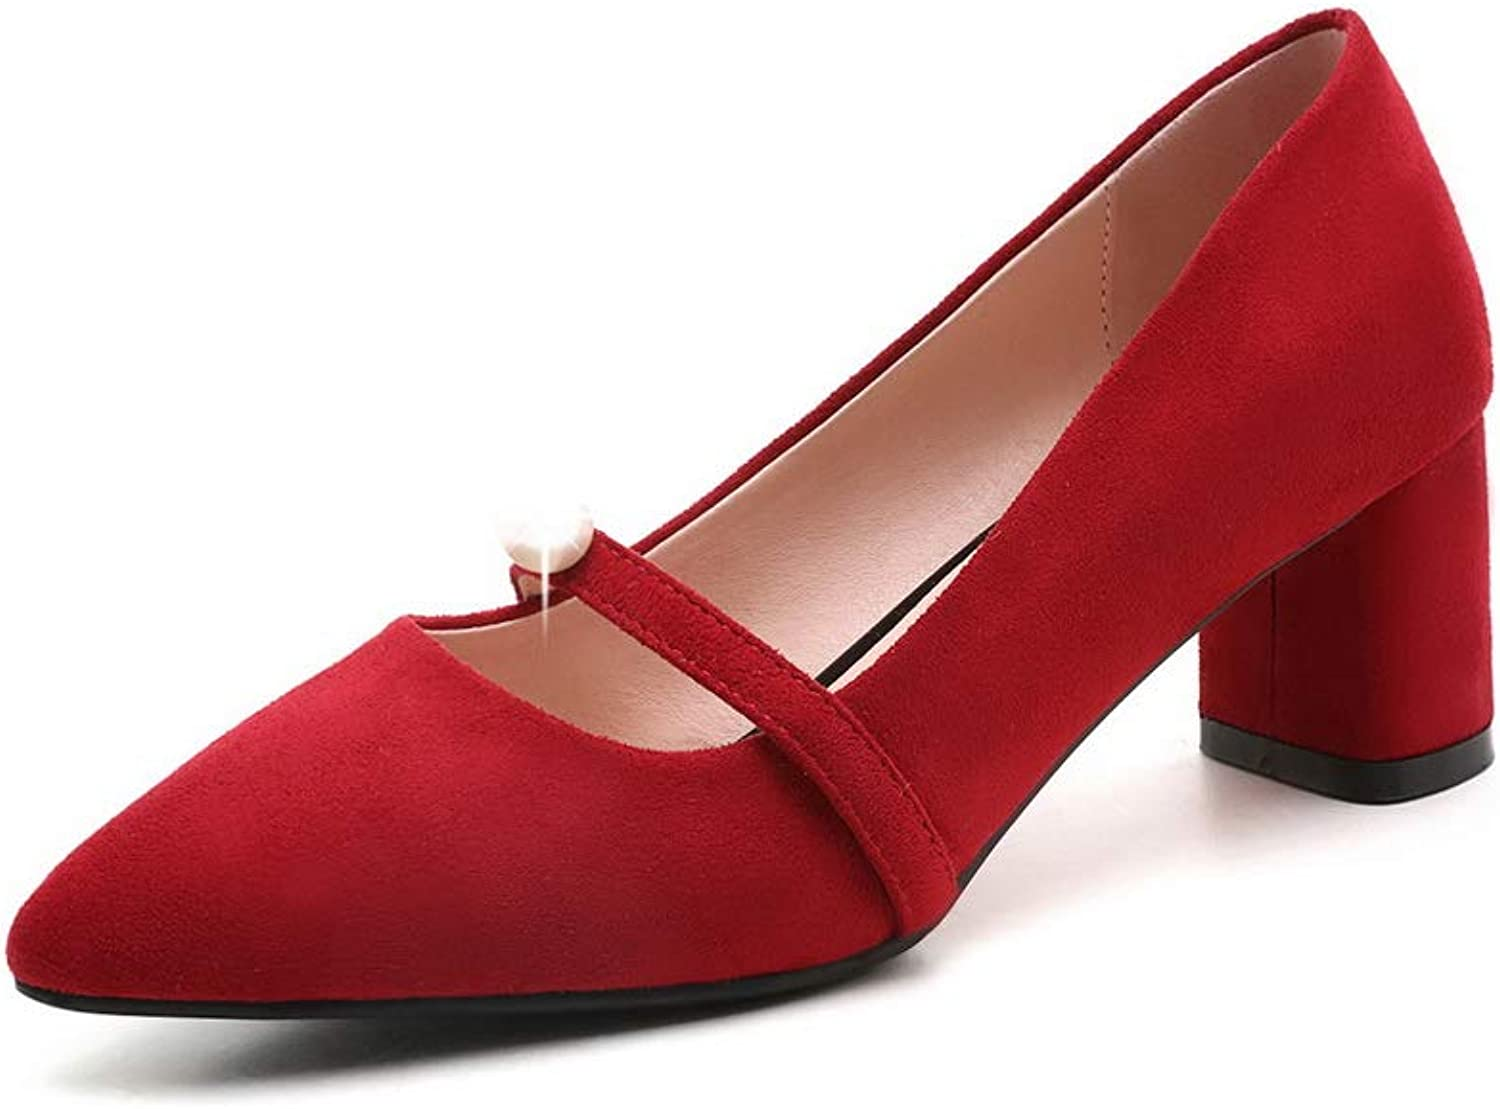 AN Womens Pointed-Toe Square Heels Imitated Suede Pumps shoes DGU00663